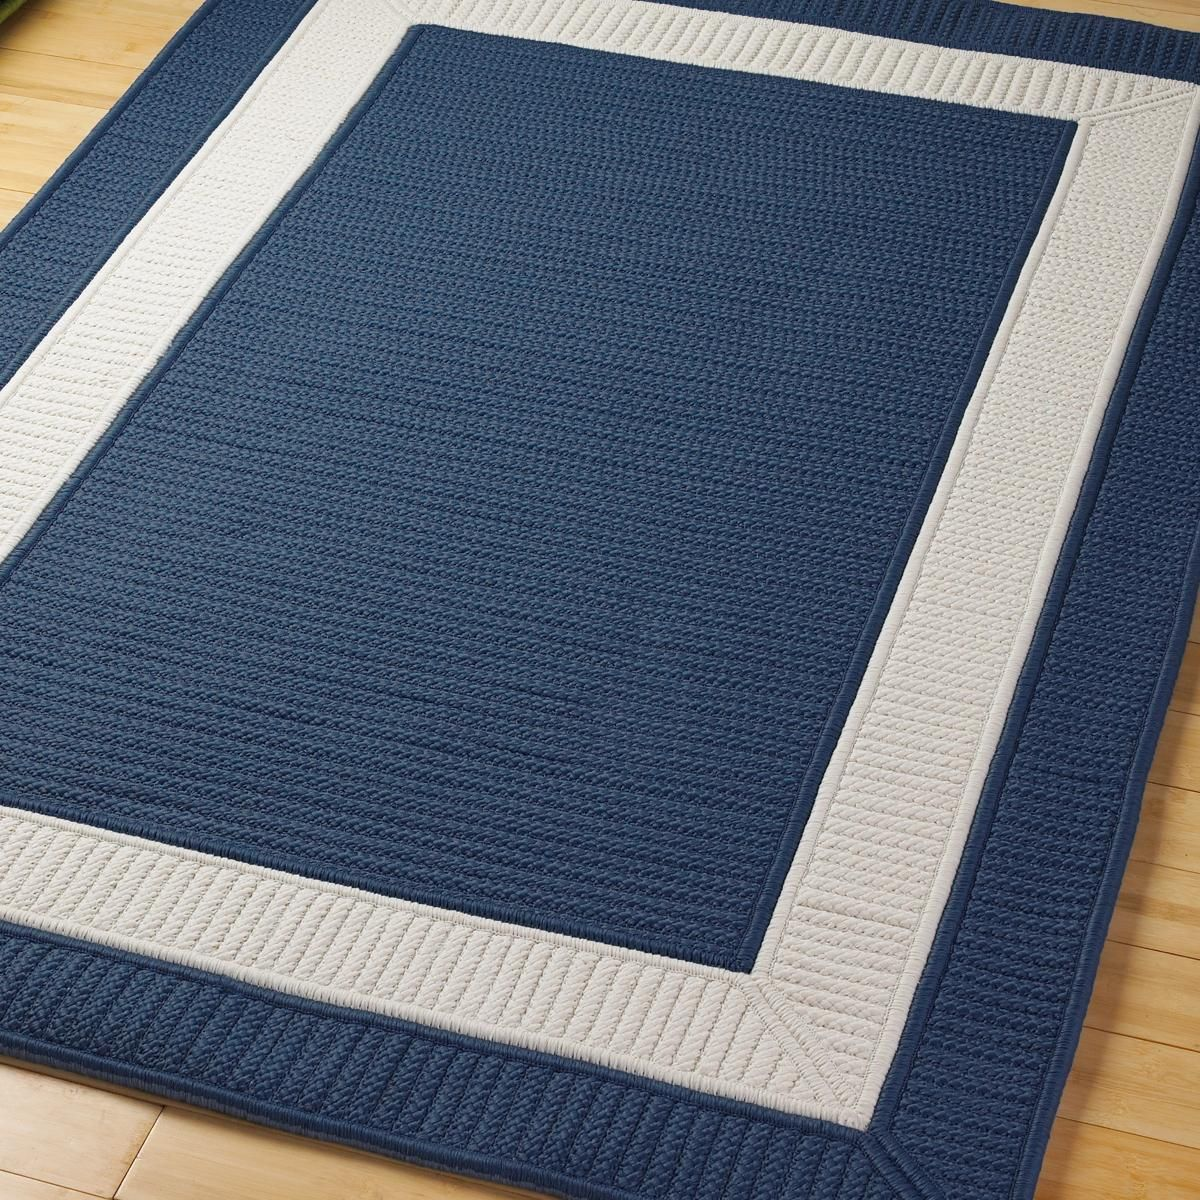 Border Braided Indoor Outdoor Rug Home Decor Blue